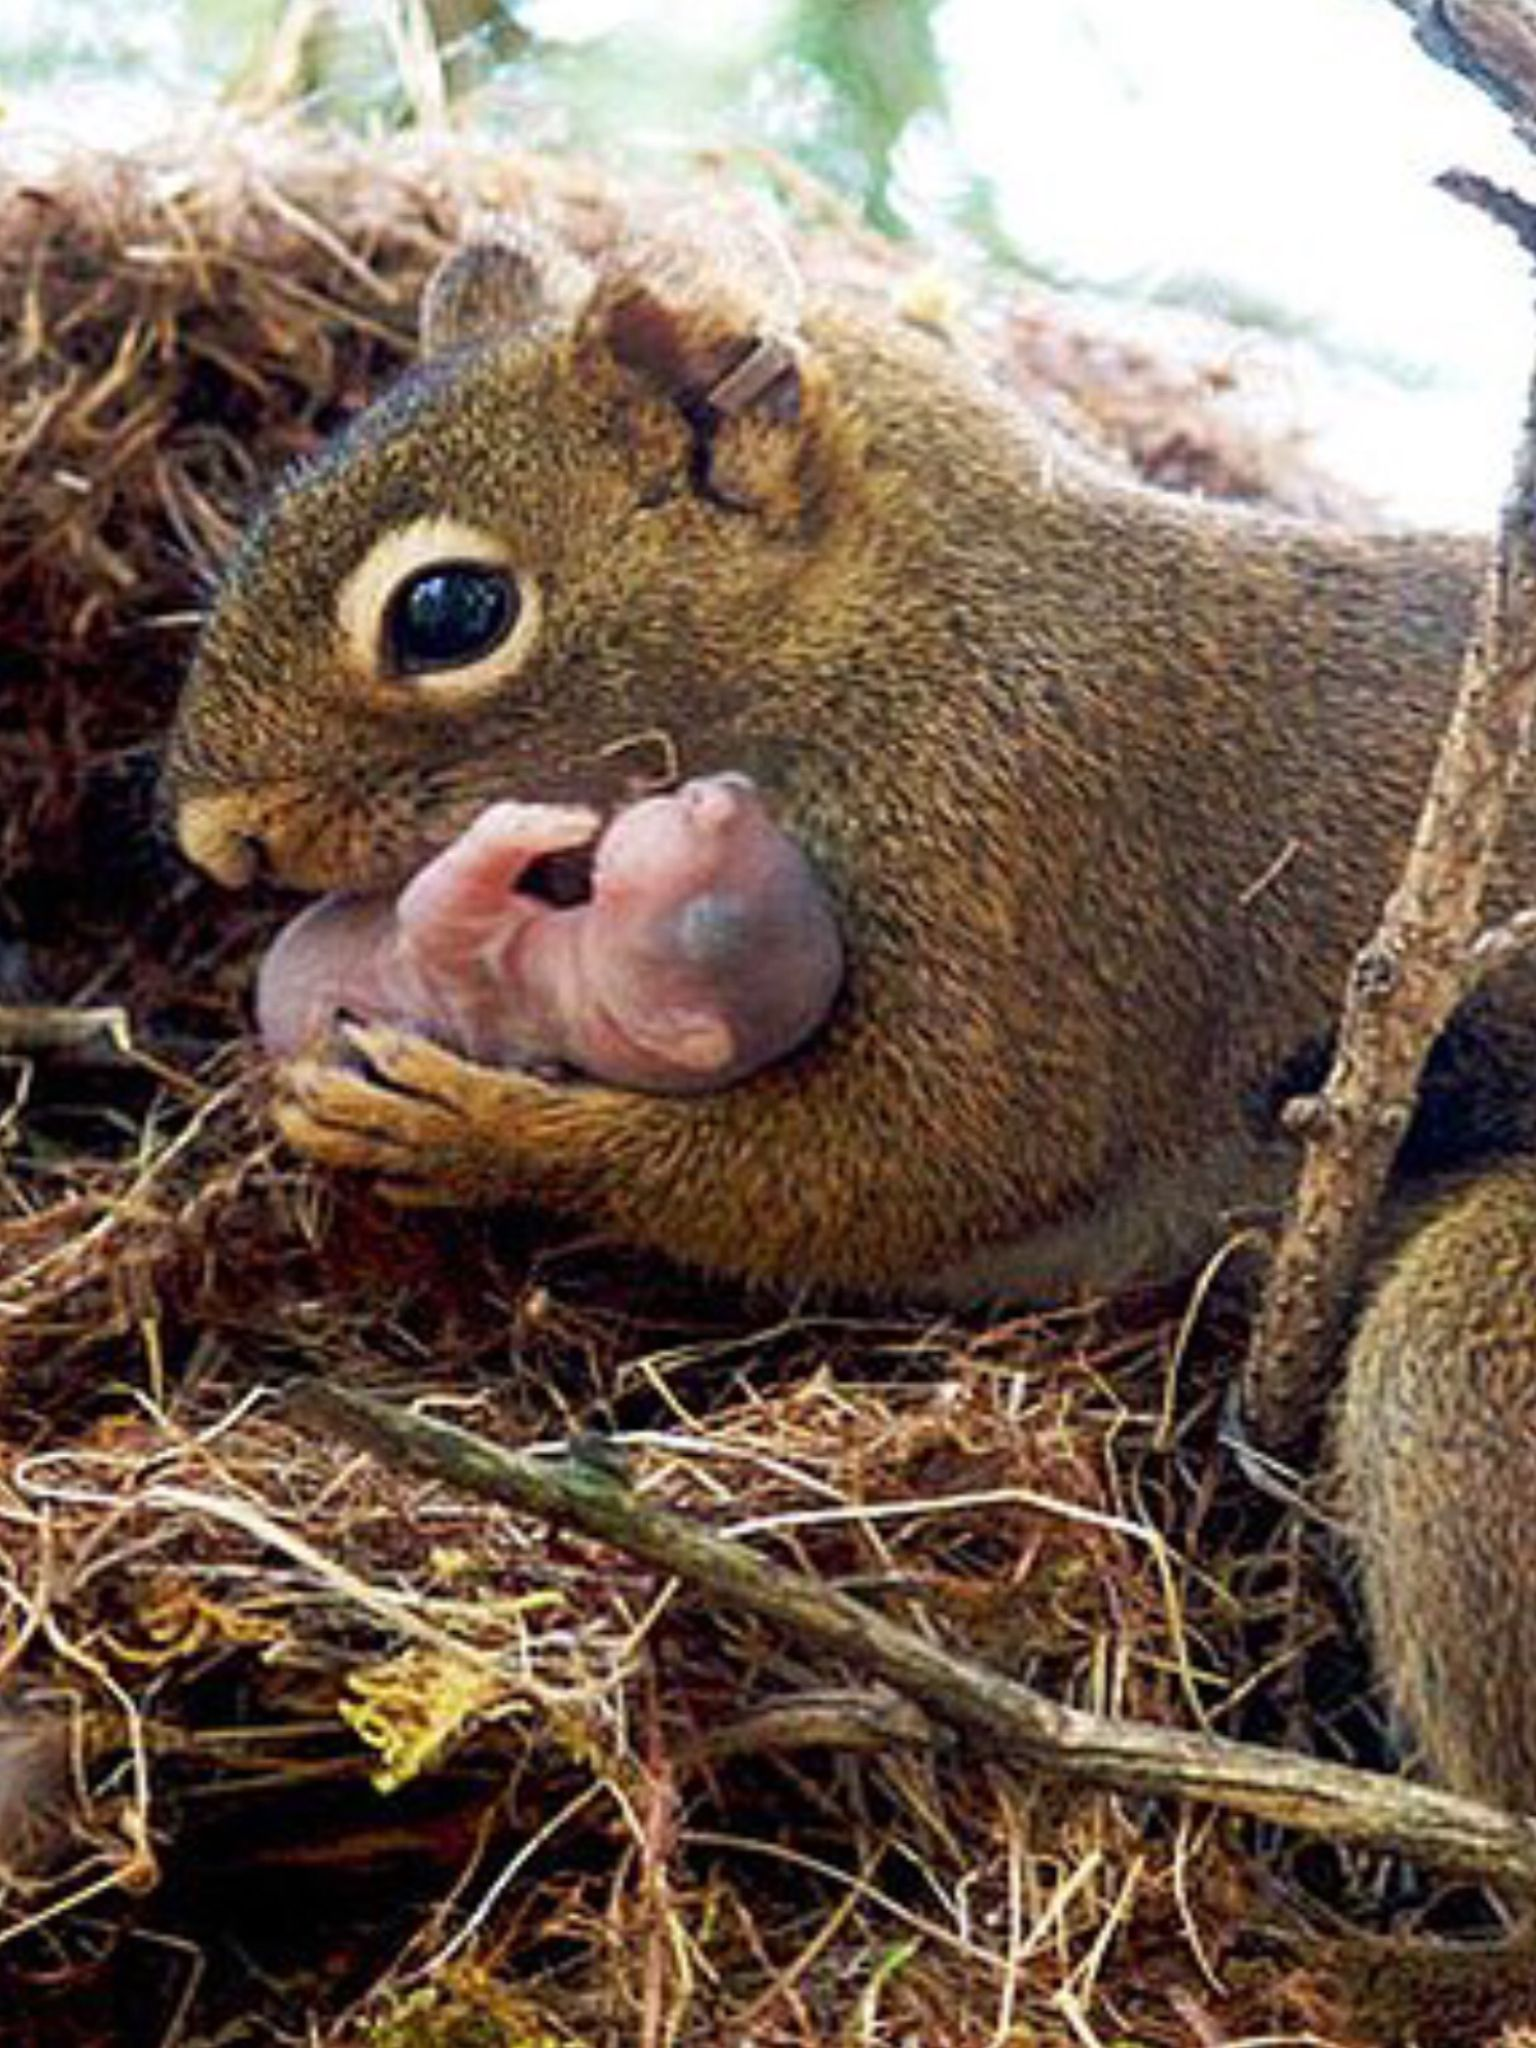 Squirrels 'adopt' only orphans they're related to, so the new mom helps pass on their common genes. But, to ensure survival of her own pups, the orphans must be a CLOSE relative. If she has 2 pups, she may adopt a niece or nephew; if 3, she'll only adopt her grandchild or a sibling w whom she shares more genes. They only adopt when the % of shared genes is hi enuf to make up for lower odds of survival for their own young.